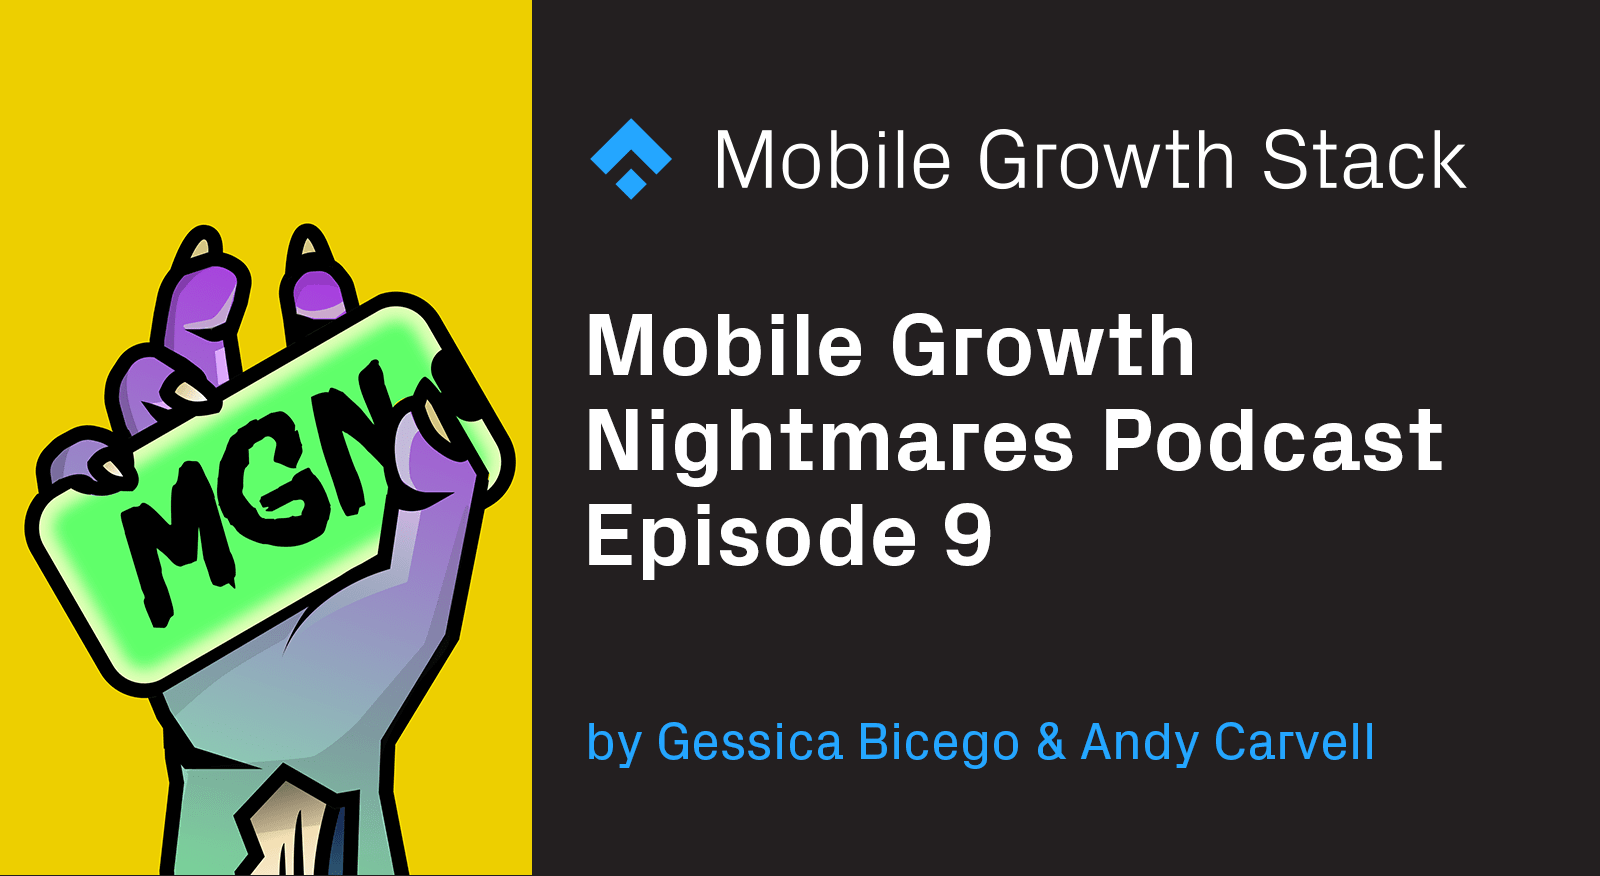 Mobile Growth Nightmares Podcast Episode 9